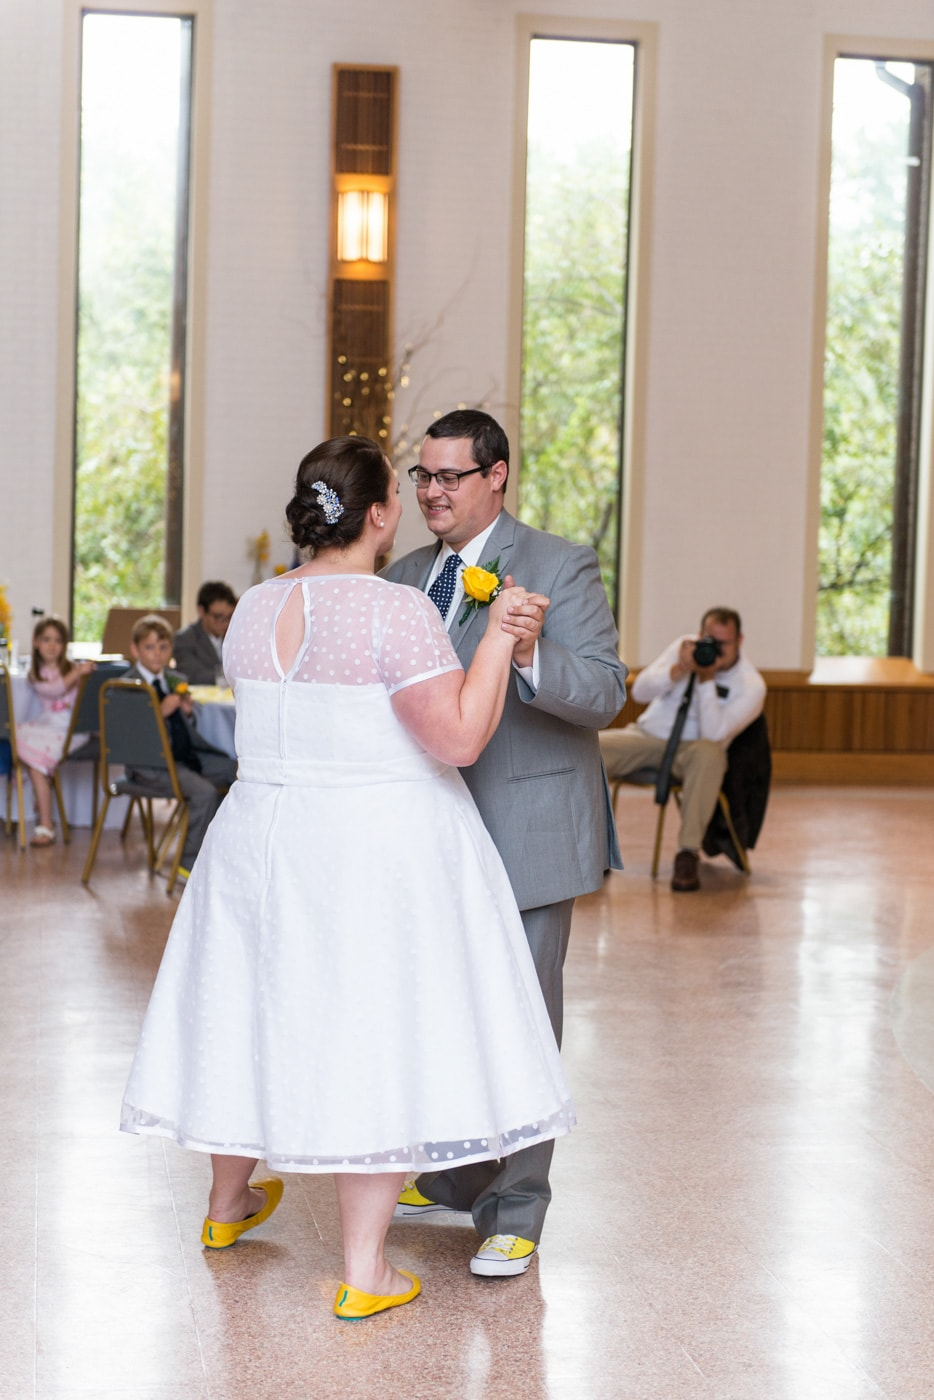 The bride and groom dance together at their wedding reception at St Mark Catholic Church in Vienna, Virginia